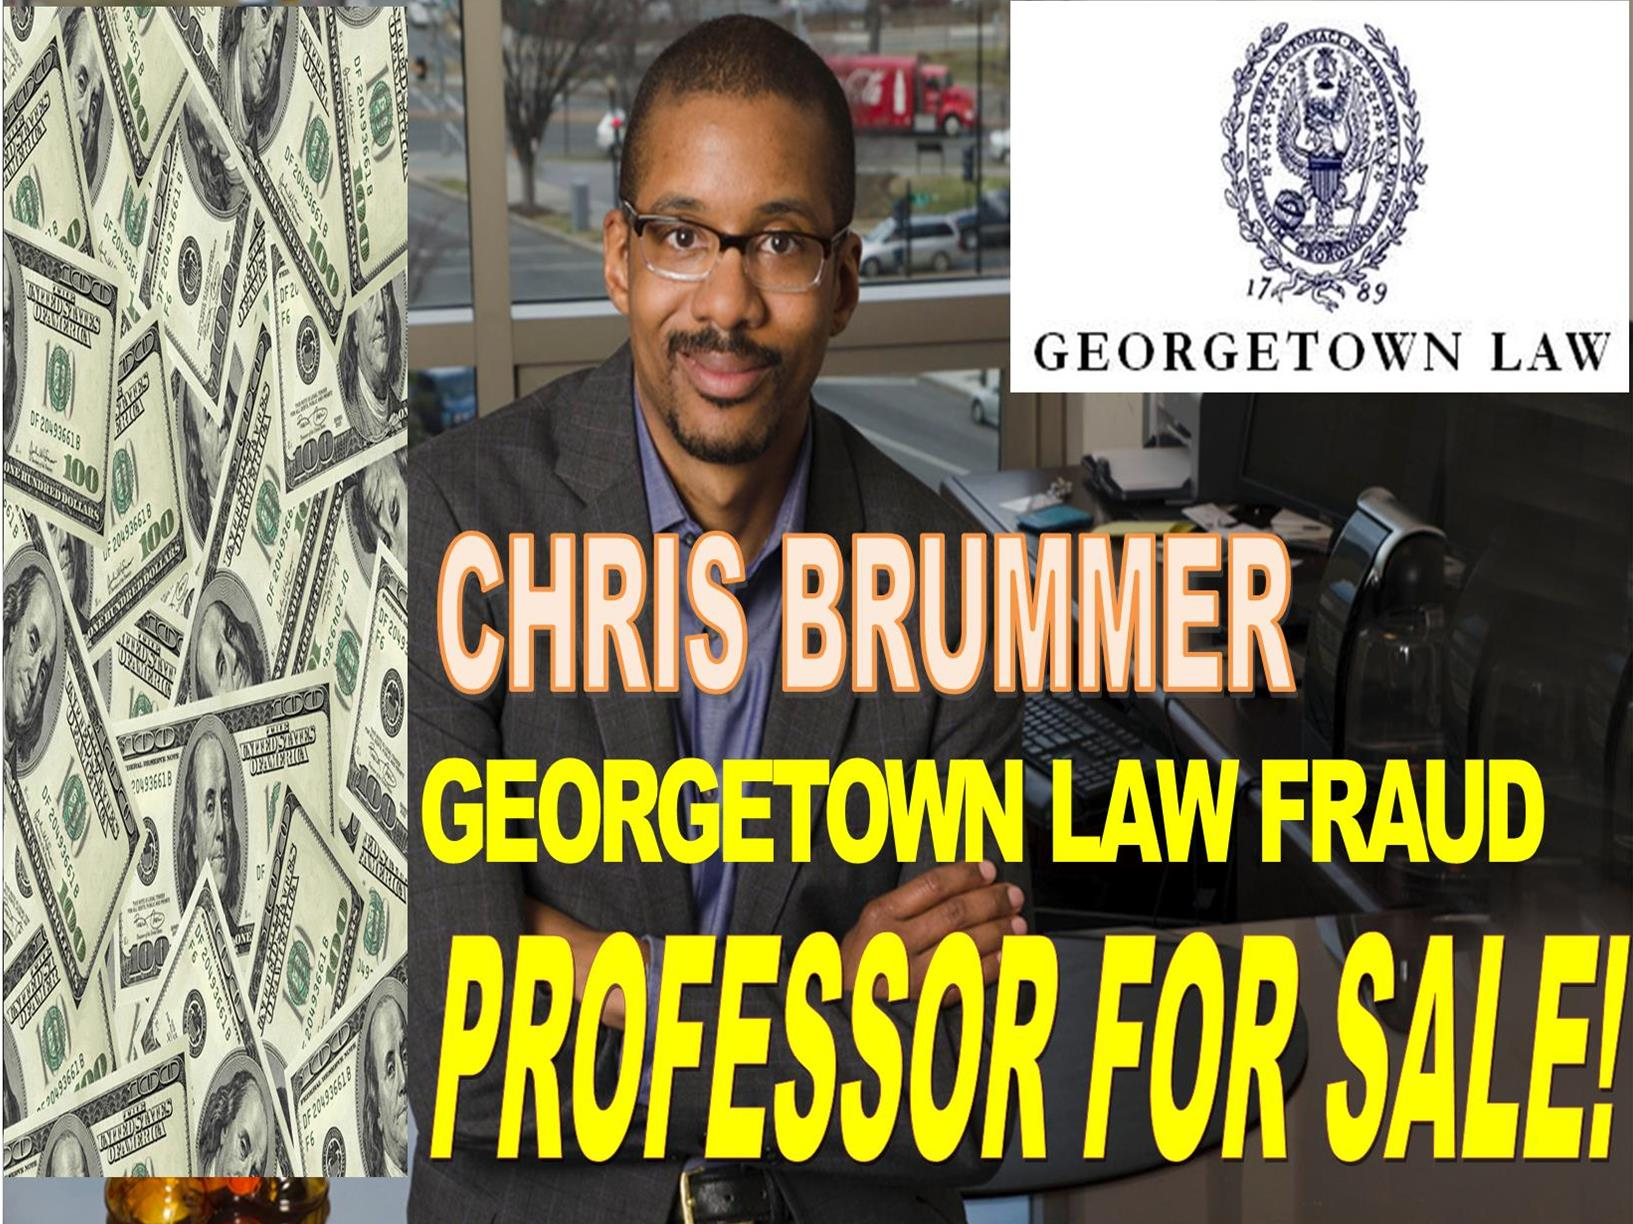 CHRIS-BRUMMER-CAUGHT-IN-MULTIPLE-FRAUD-DUMB-GEORGETOWN-LAW-PROFESSOR-DUPED